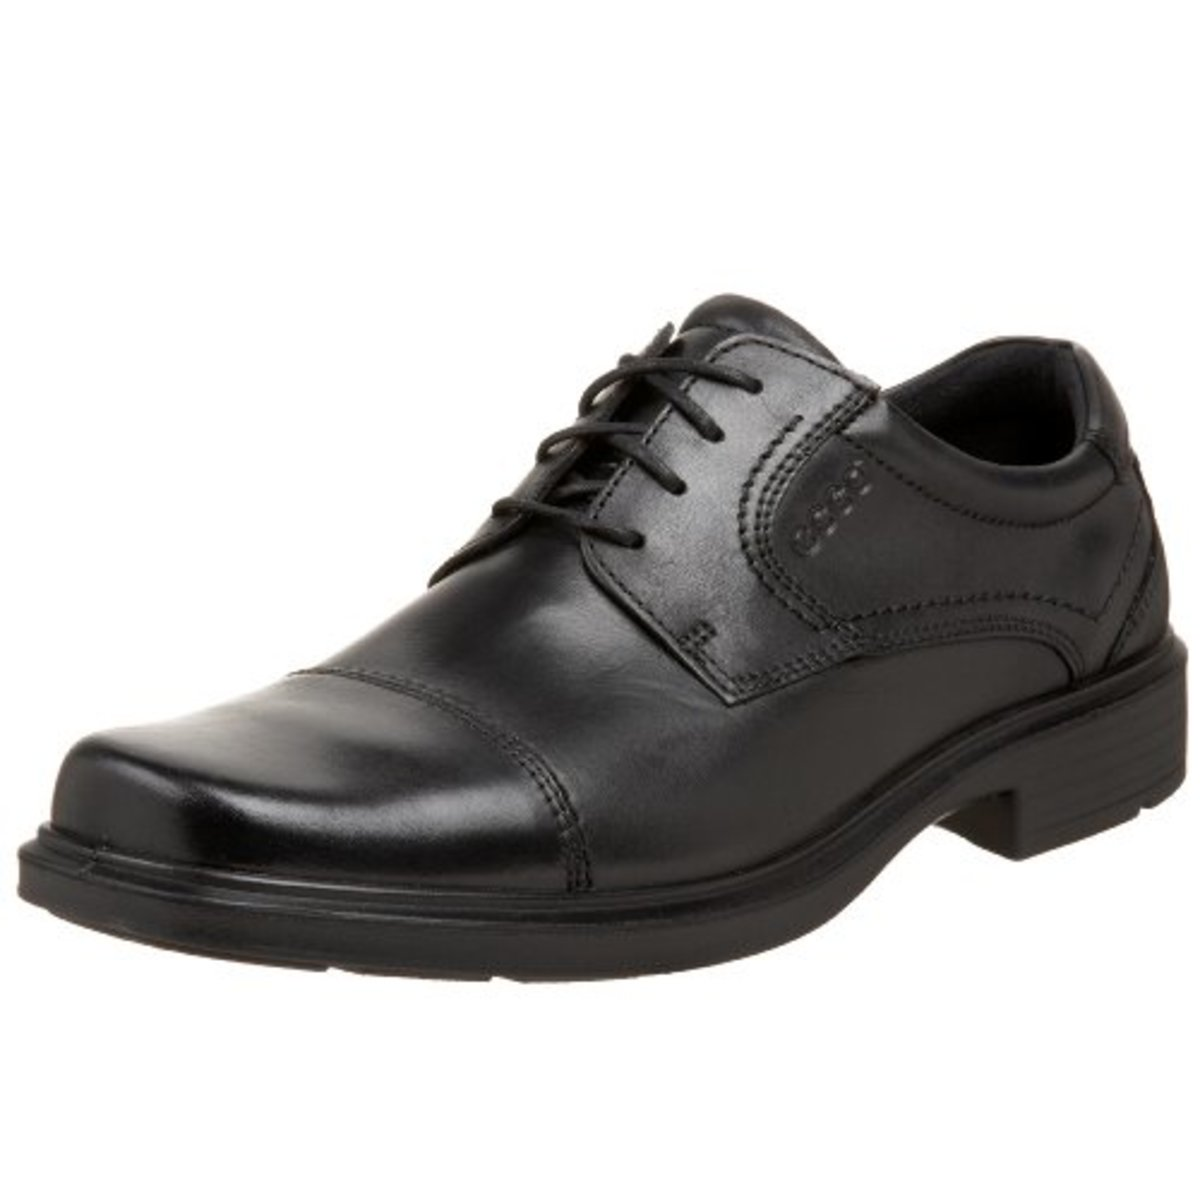 Top 5 Comfortable Dress Shoes for Men 2017 | Bellatory